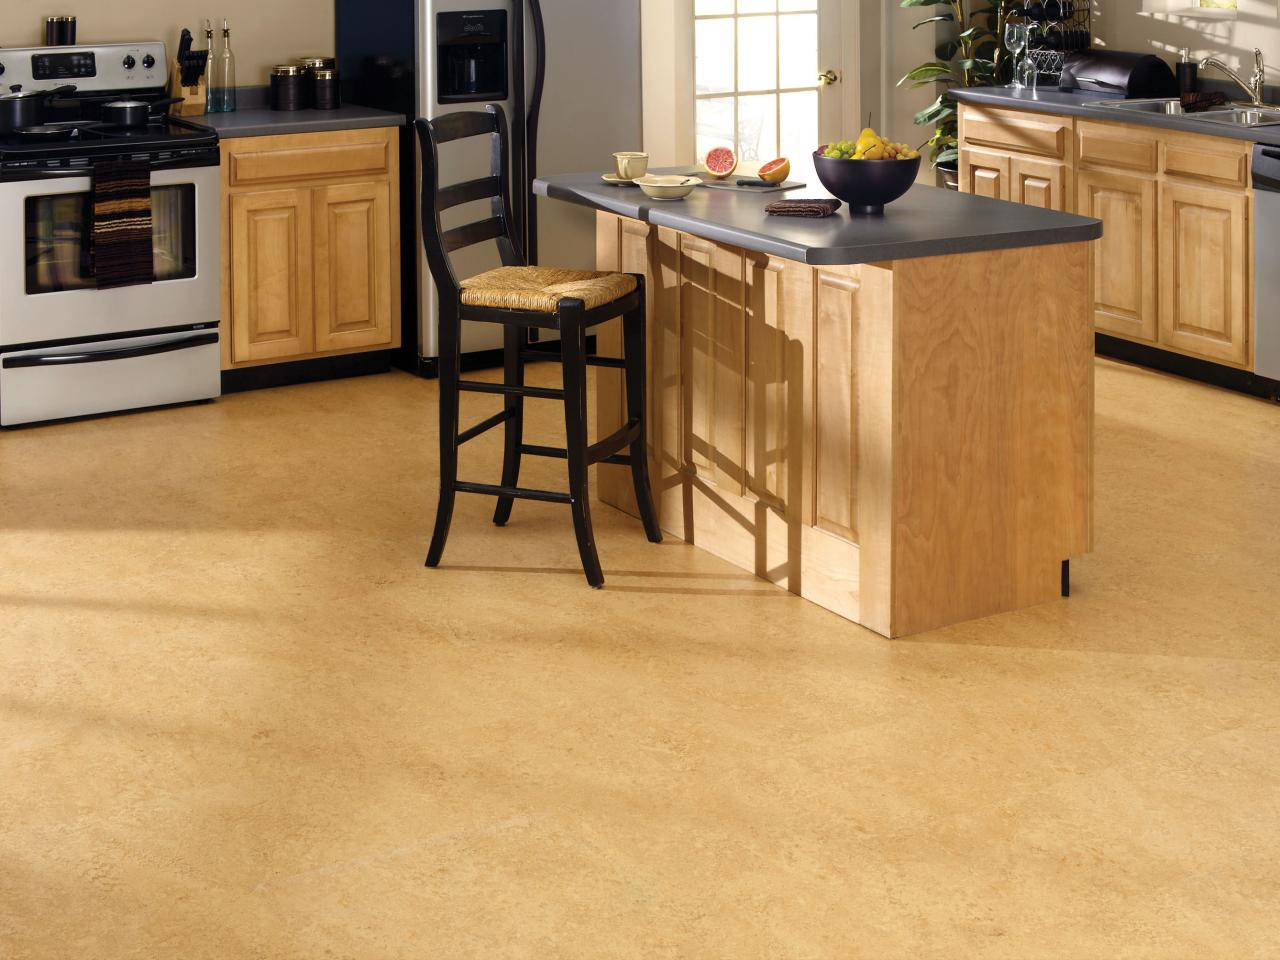 us-floors_corkoleum-kitchen_s4x3-jpg-rend-hgtvcom-1280-960